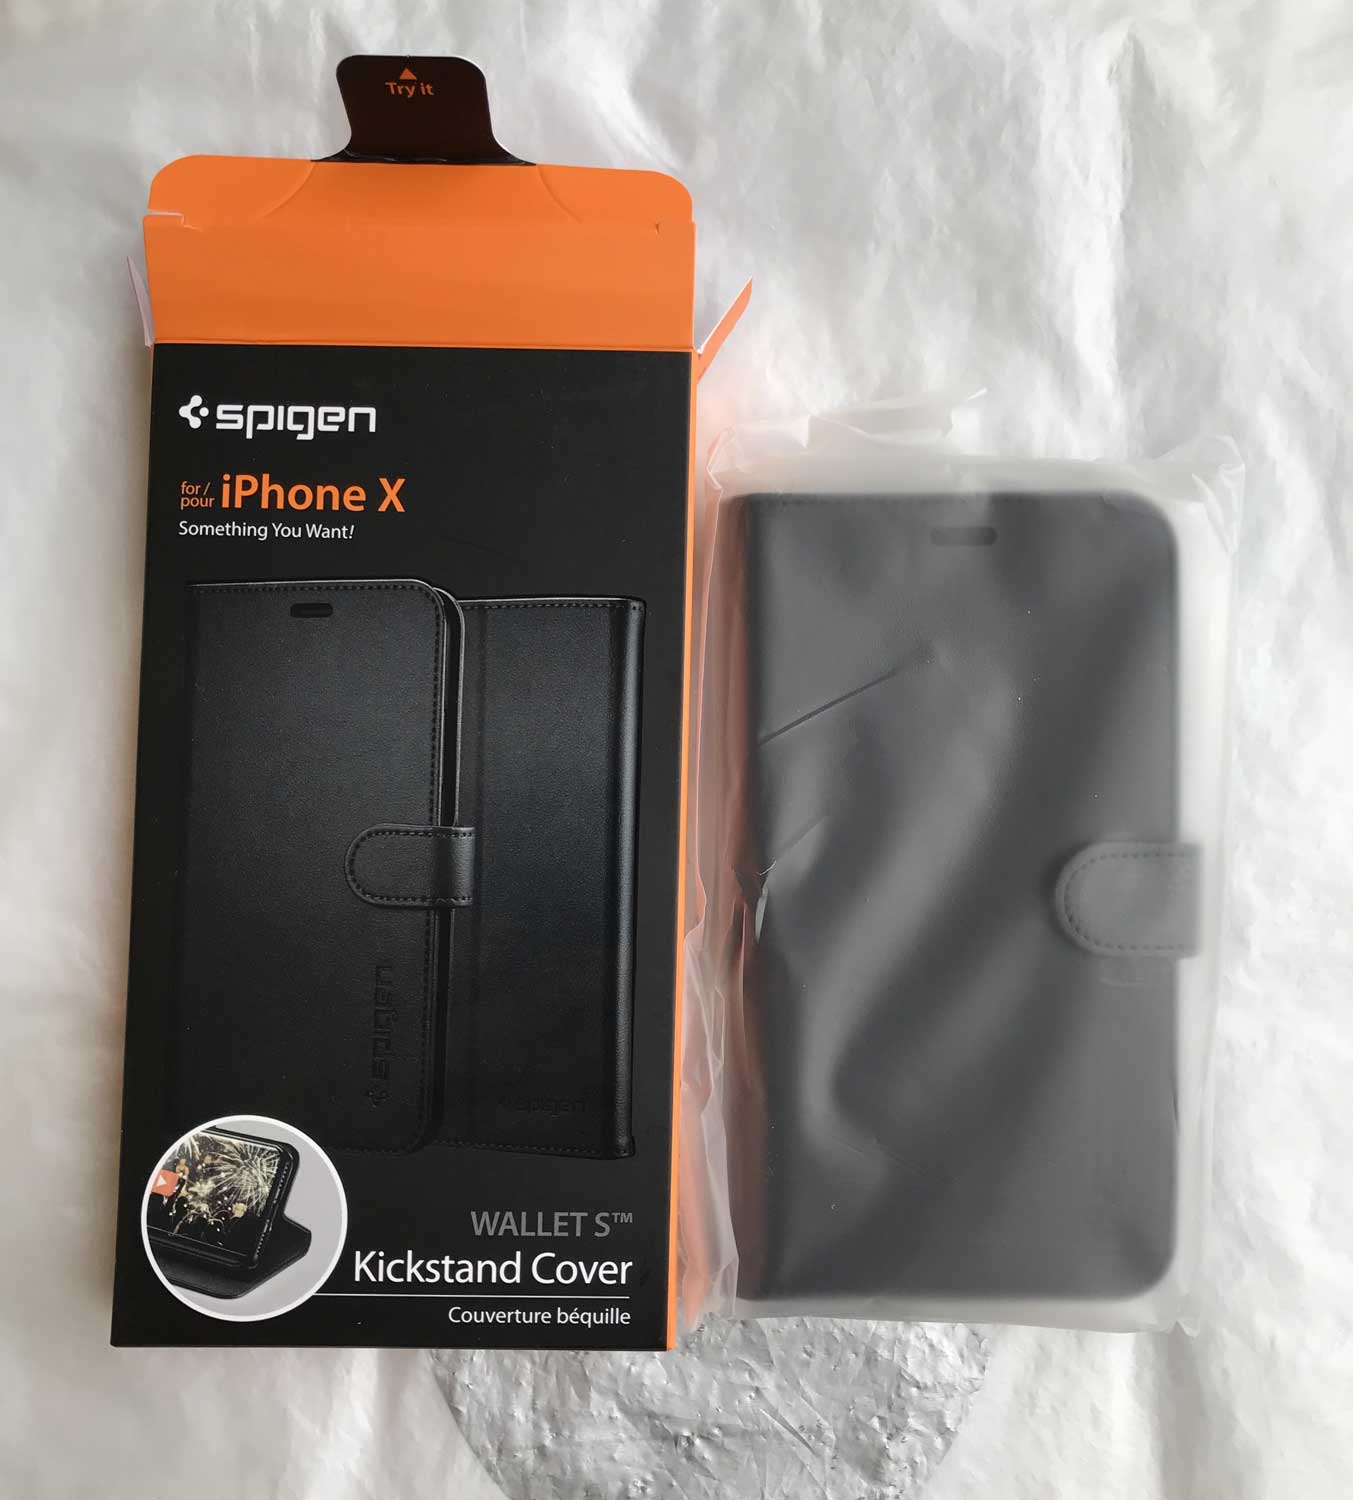 coque spigen iphone x carte